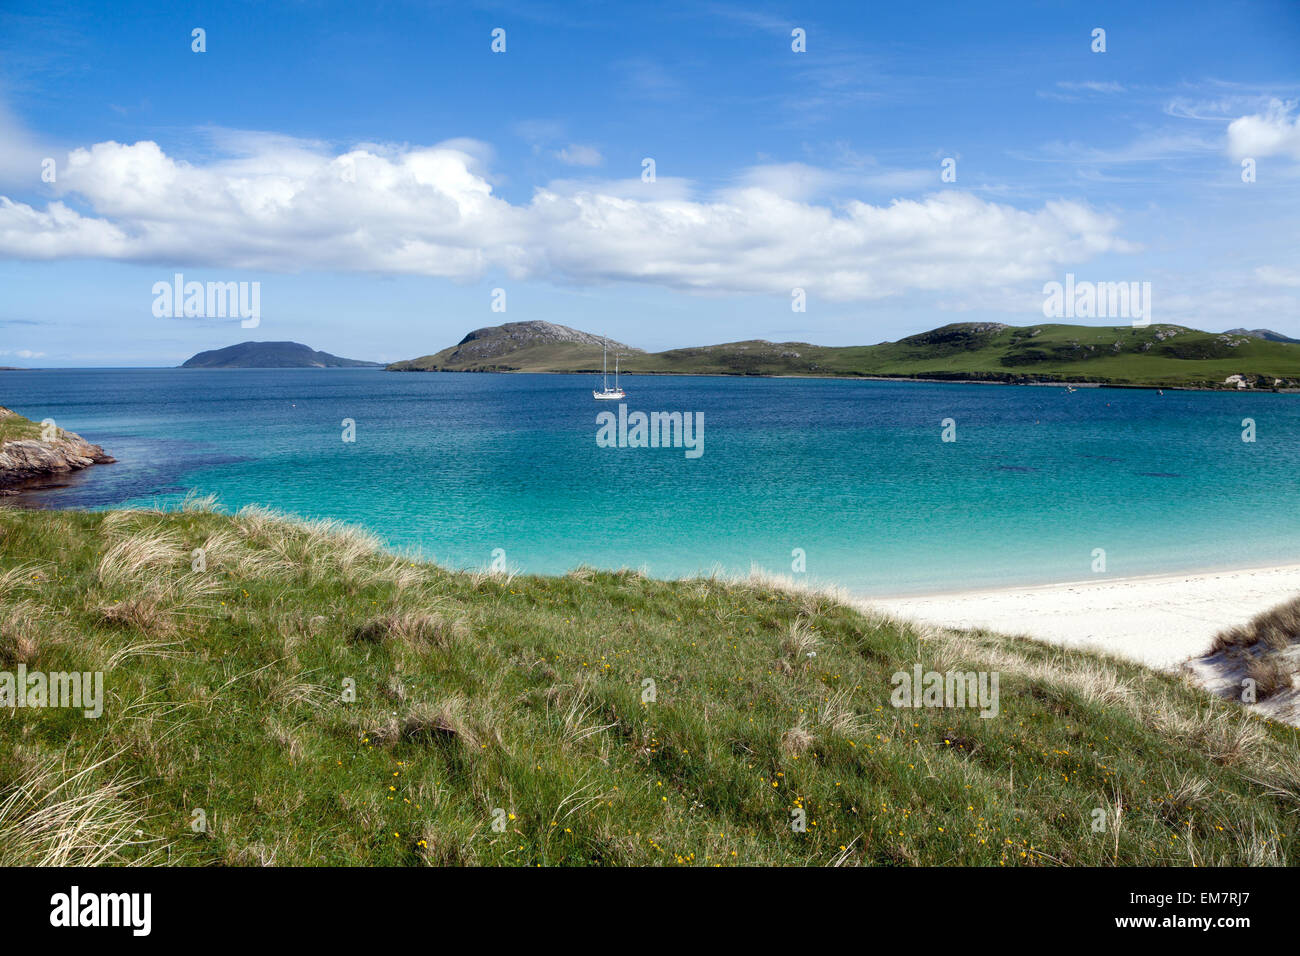 Scottish paradise beach : Isle of Vatersay, Outer Hebrides - Stock Image